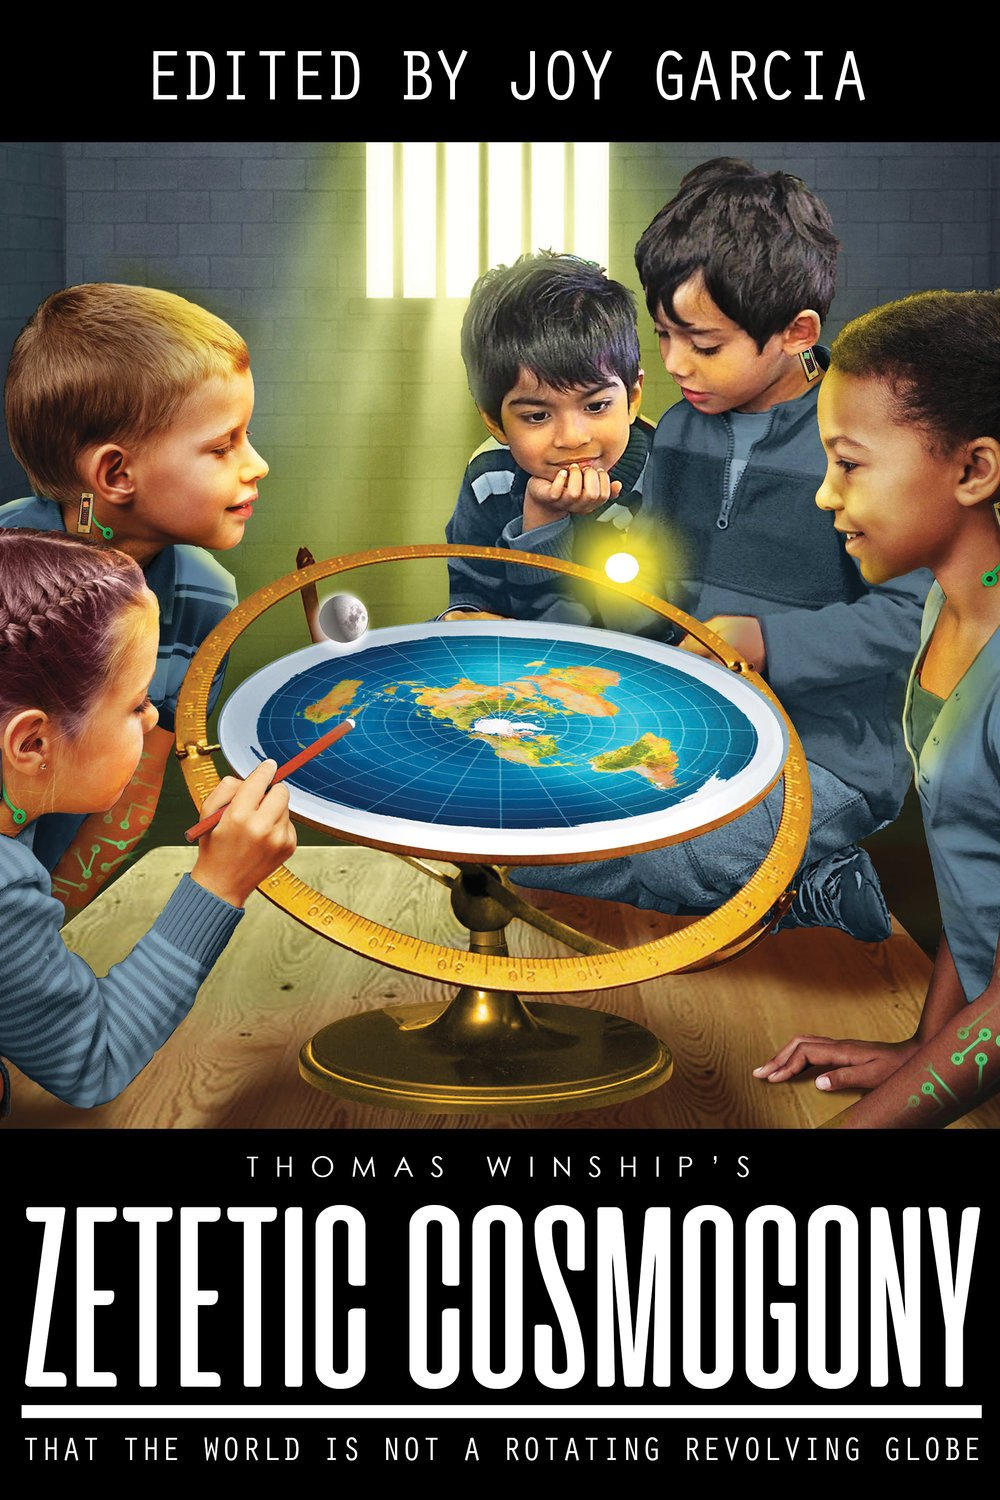 Zetetic Cosmogony: That The World Is Not A Rotating Revolving Globe